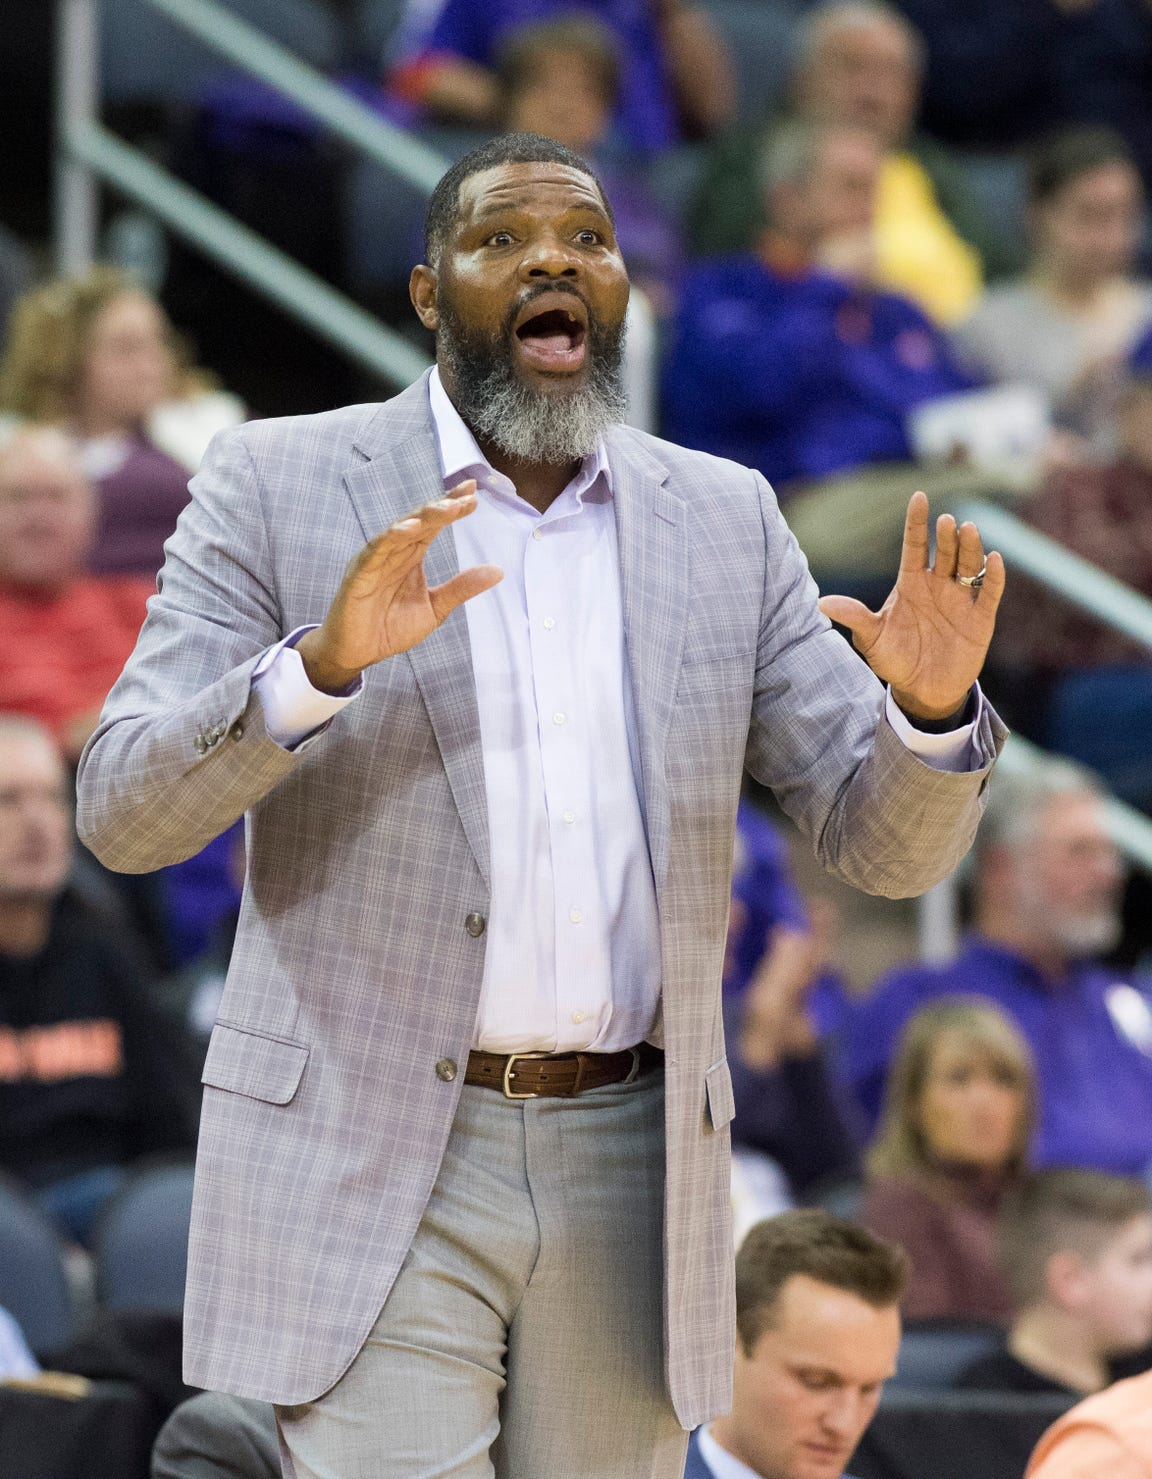 UE Head Coach Walter McCarty calls a play during the UE vs Wyoming game at the Ford Center Wednesday, Nov. 28, 2018. McCarty and Wyoming's Head Coach Allen Edwards were teammates when they played for Kentucky in 1996.